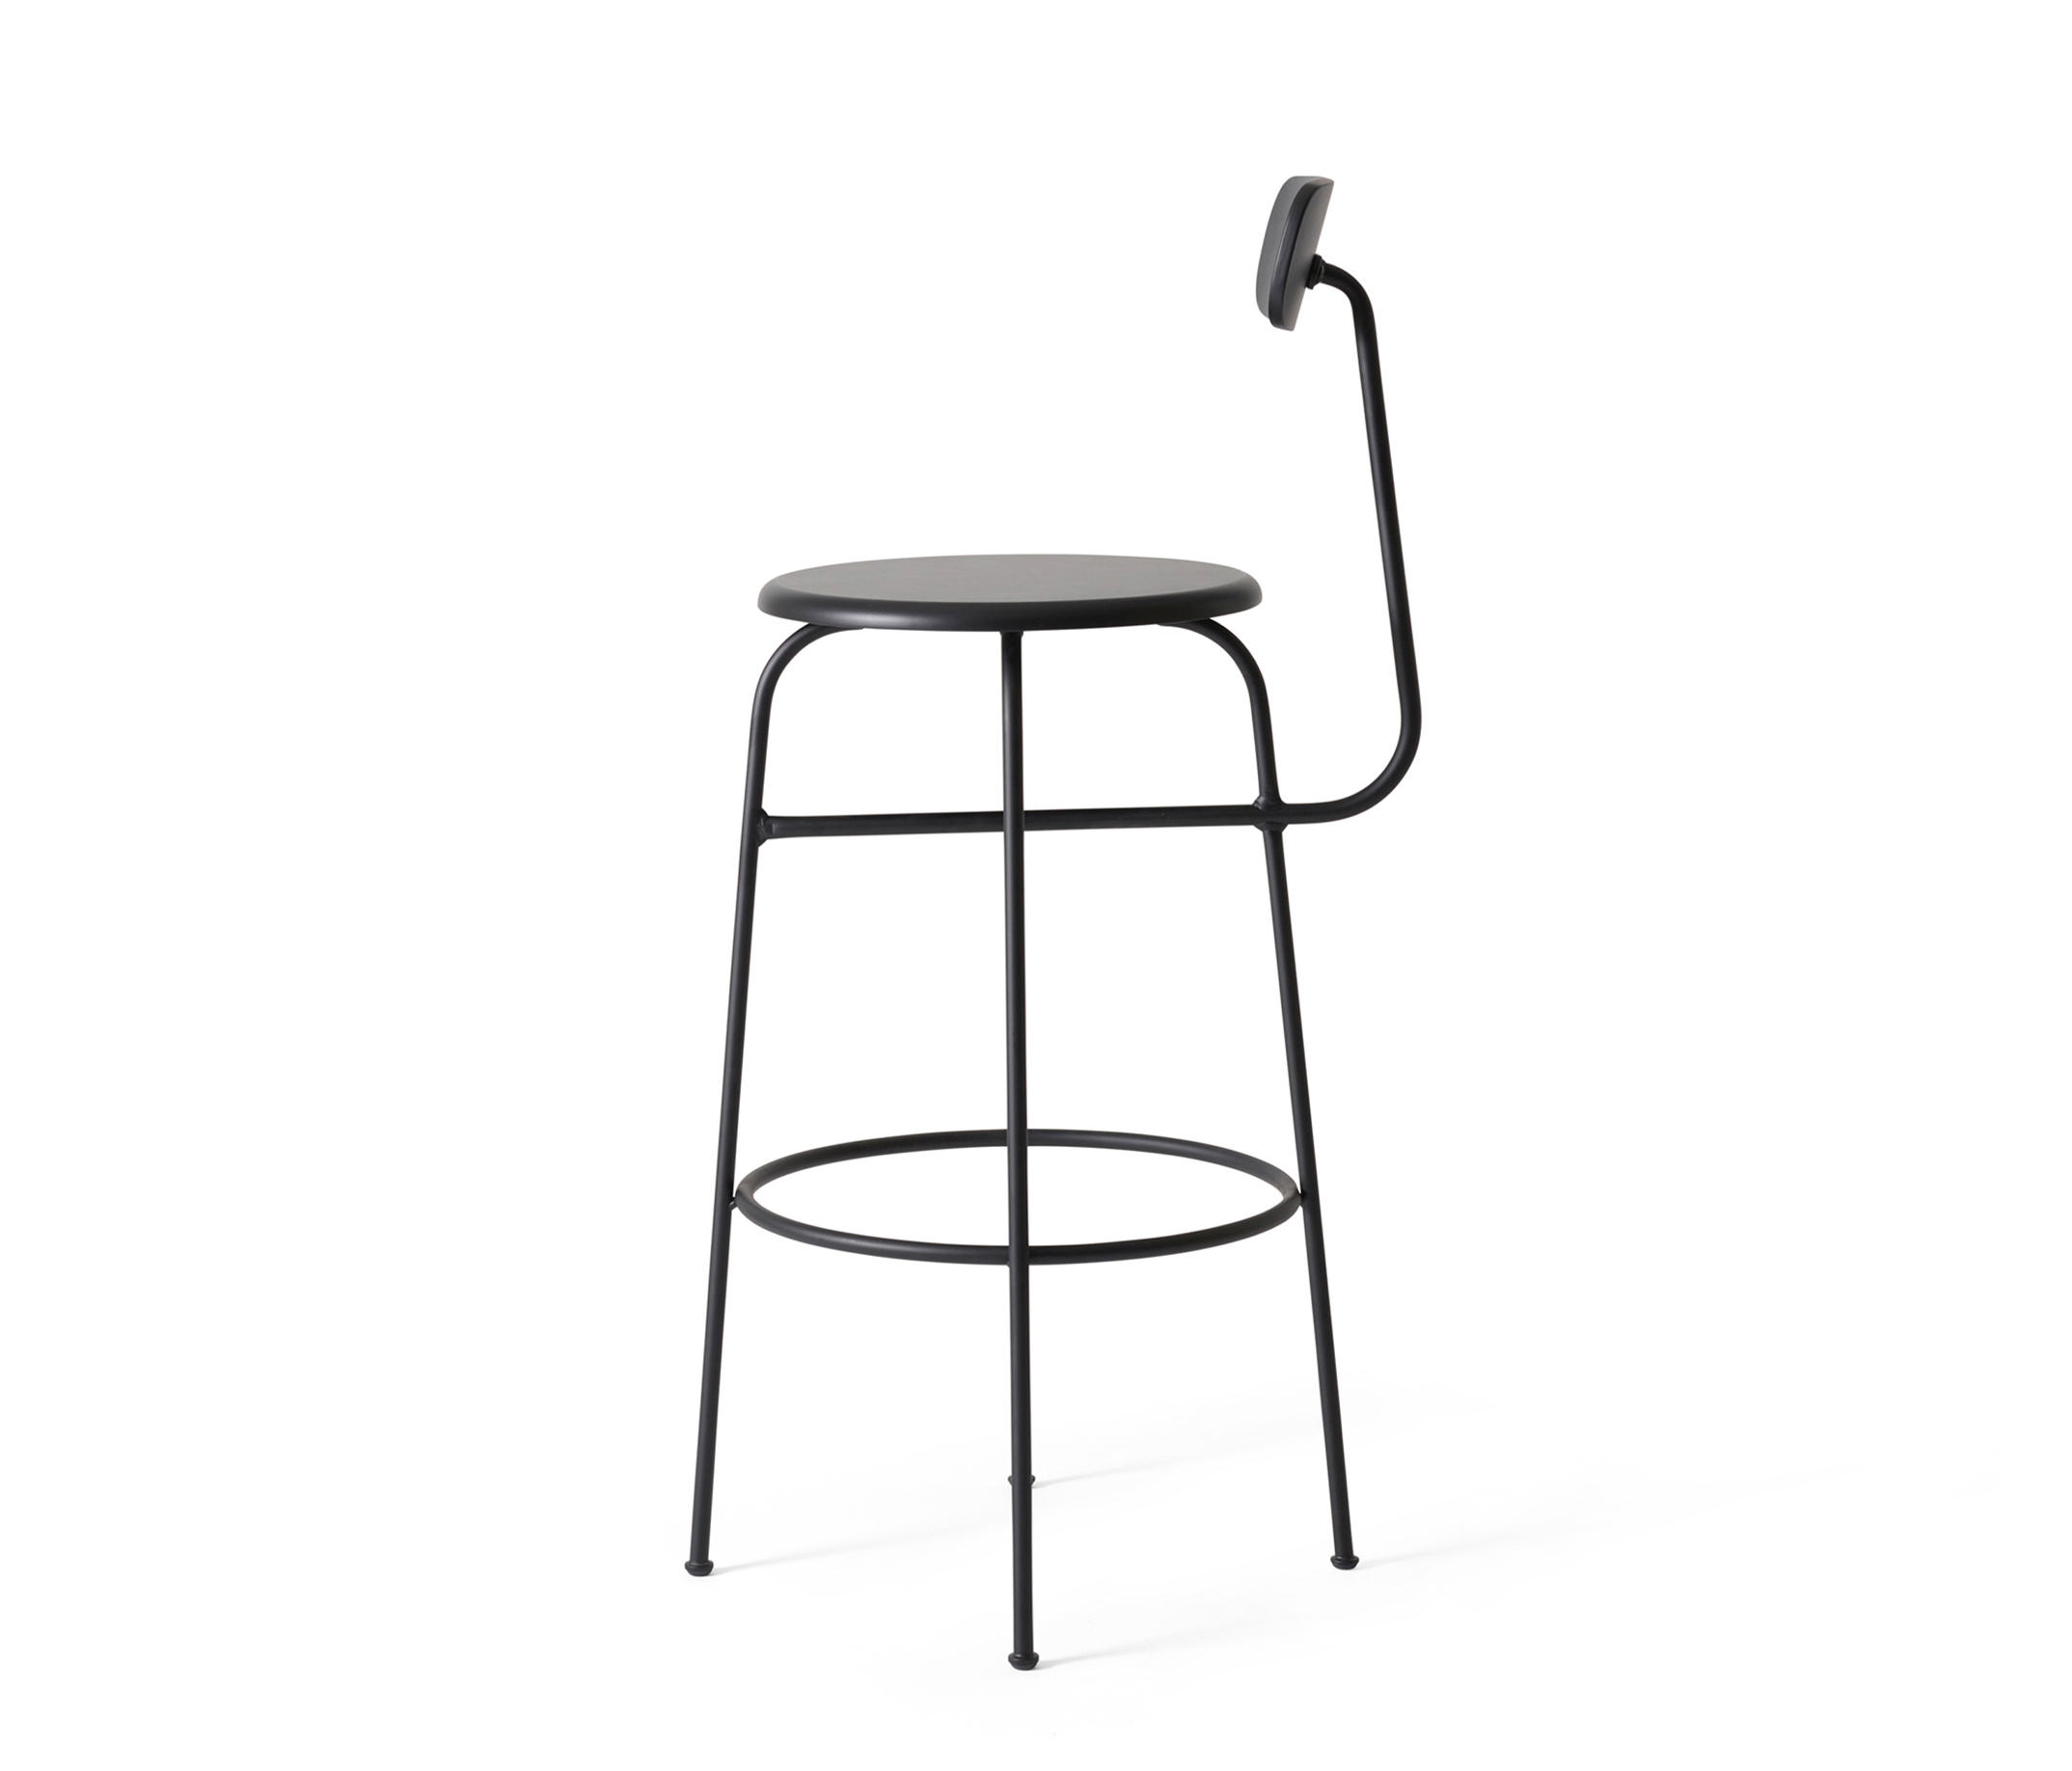 Swell Afteroom Bar Chair Black Architonic Gamerscity Chair Design For Home Gamerscityorg